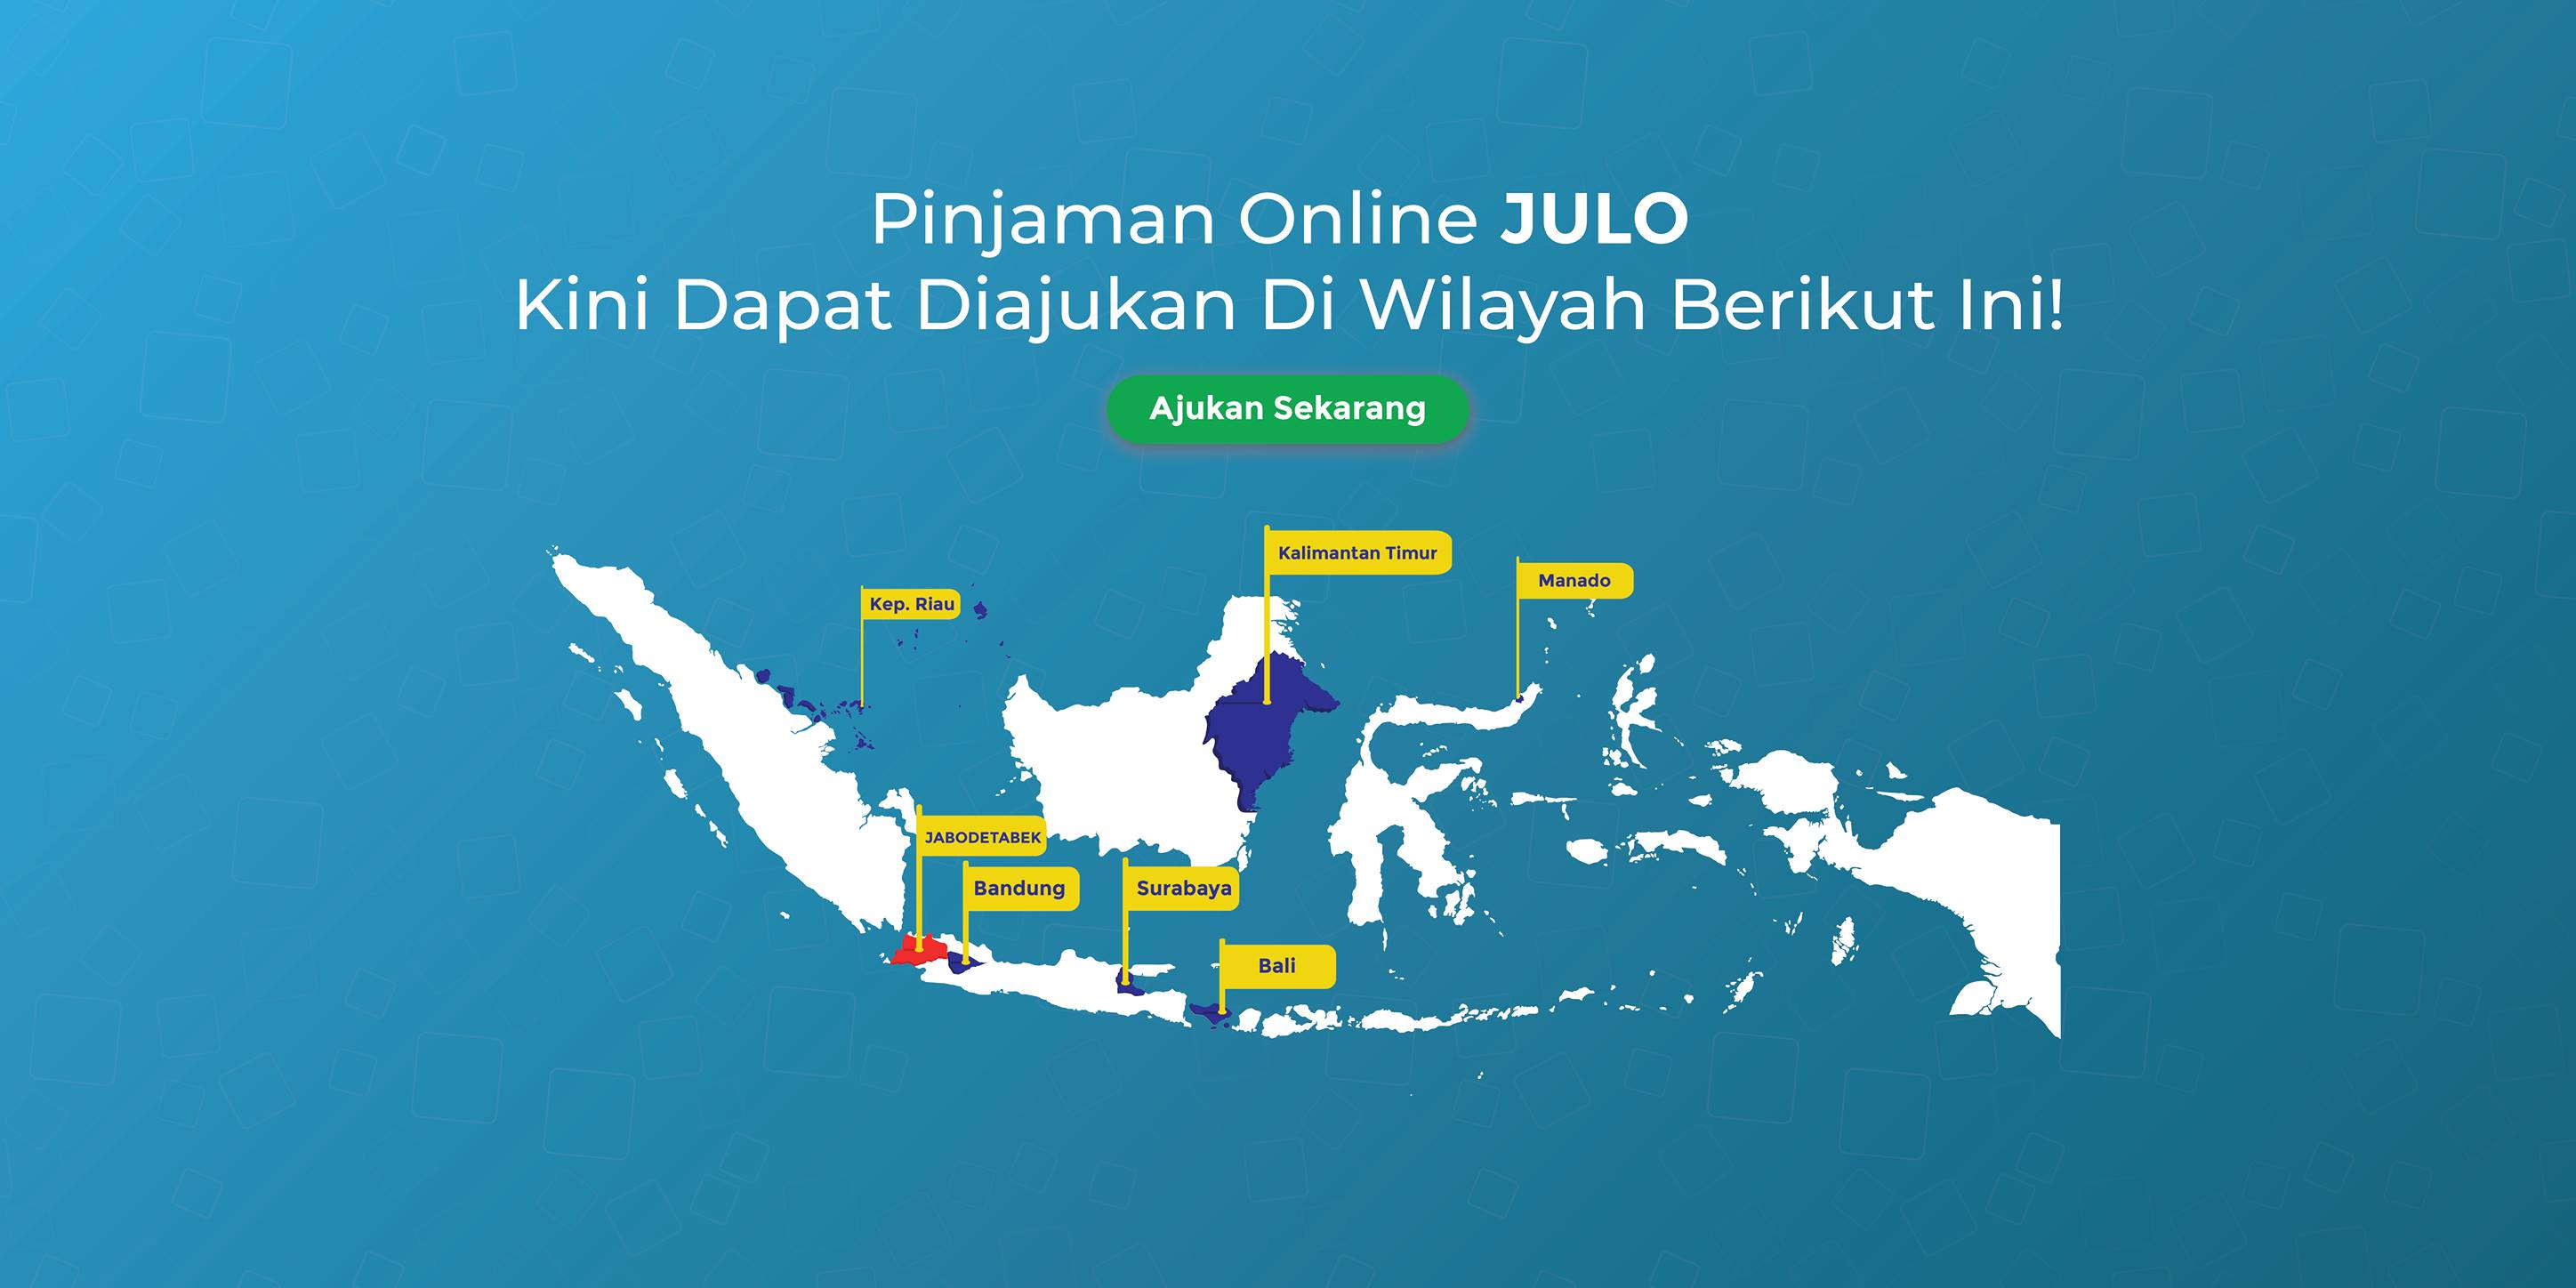 Local Fintech Julo Claimed to Have Received OJK Permit Recently